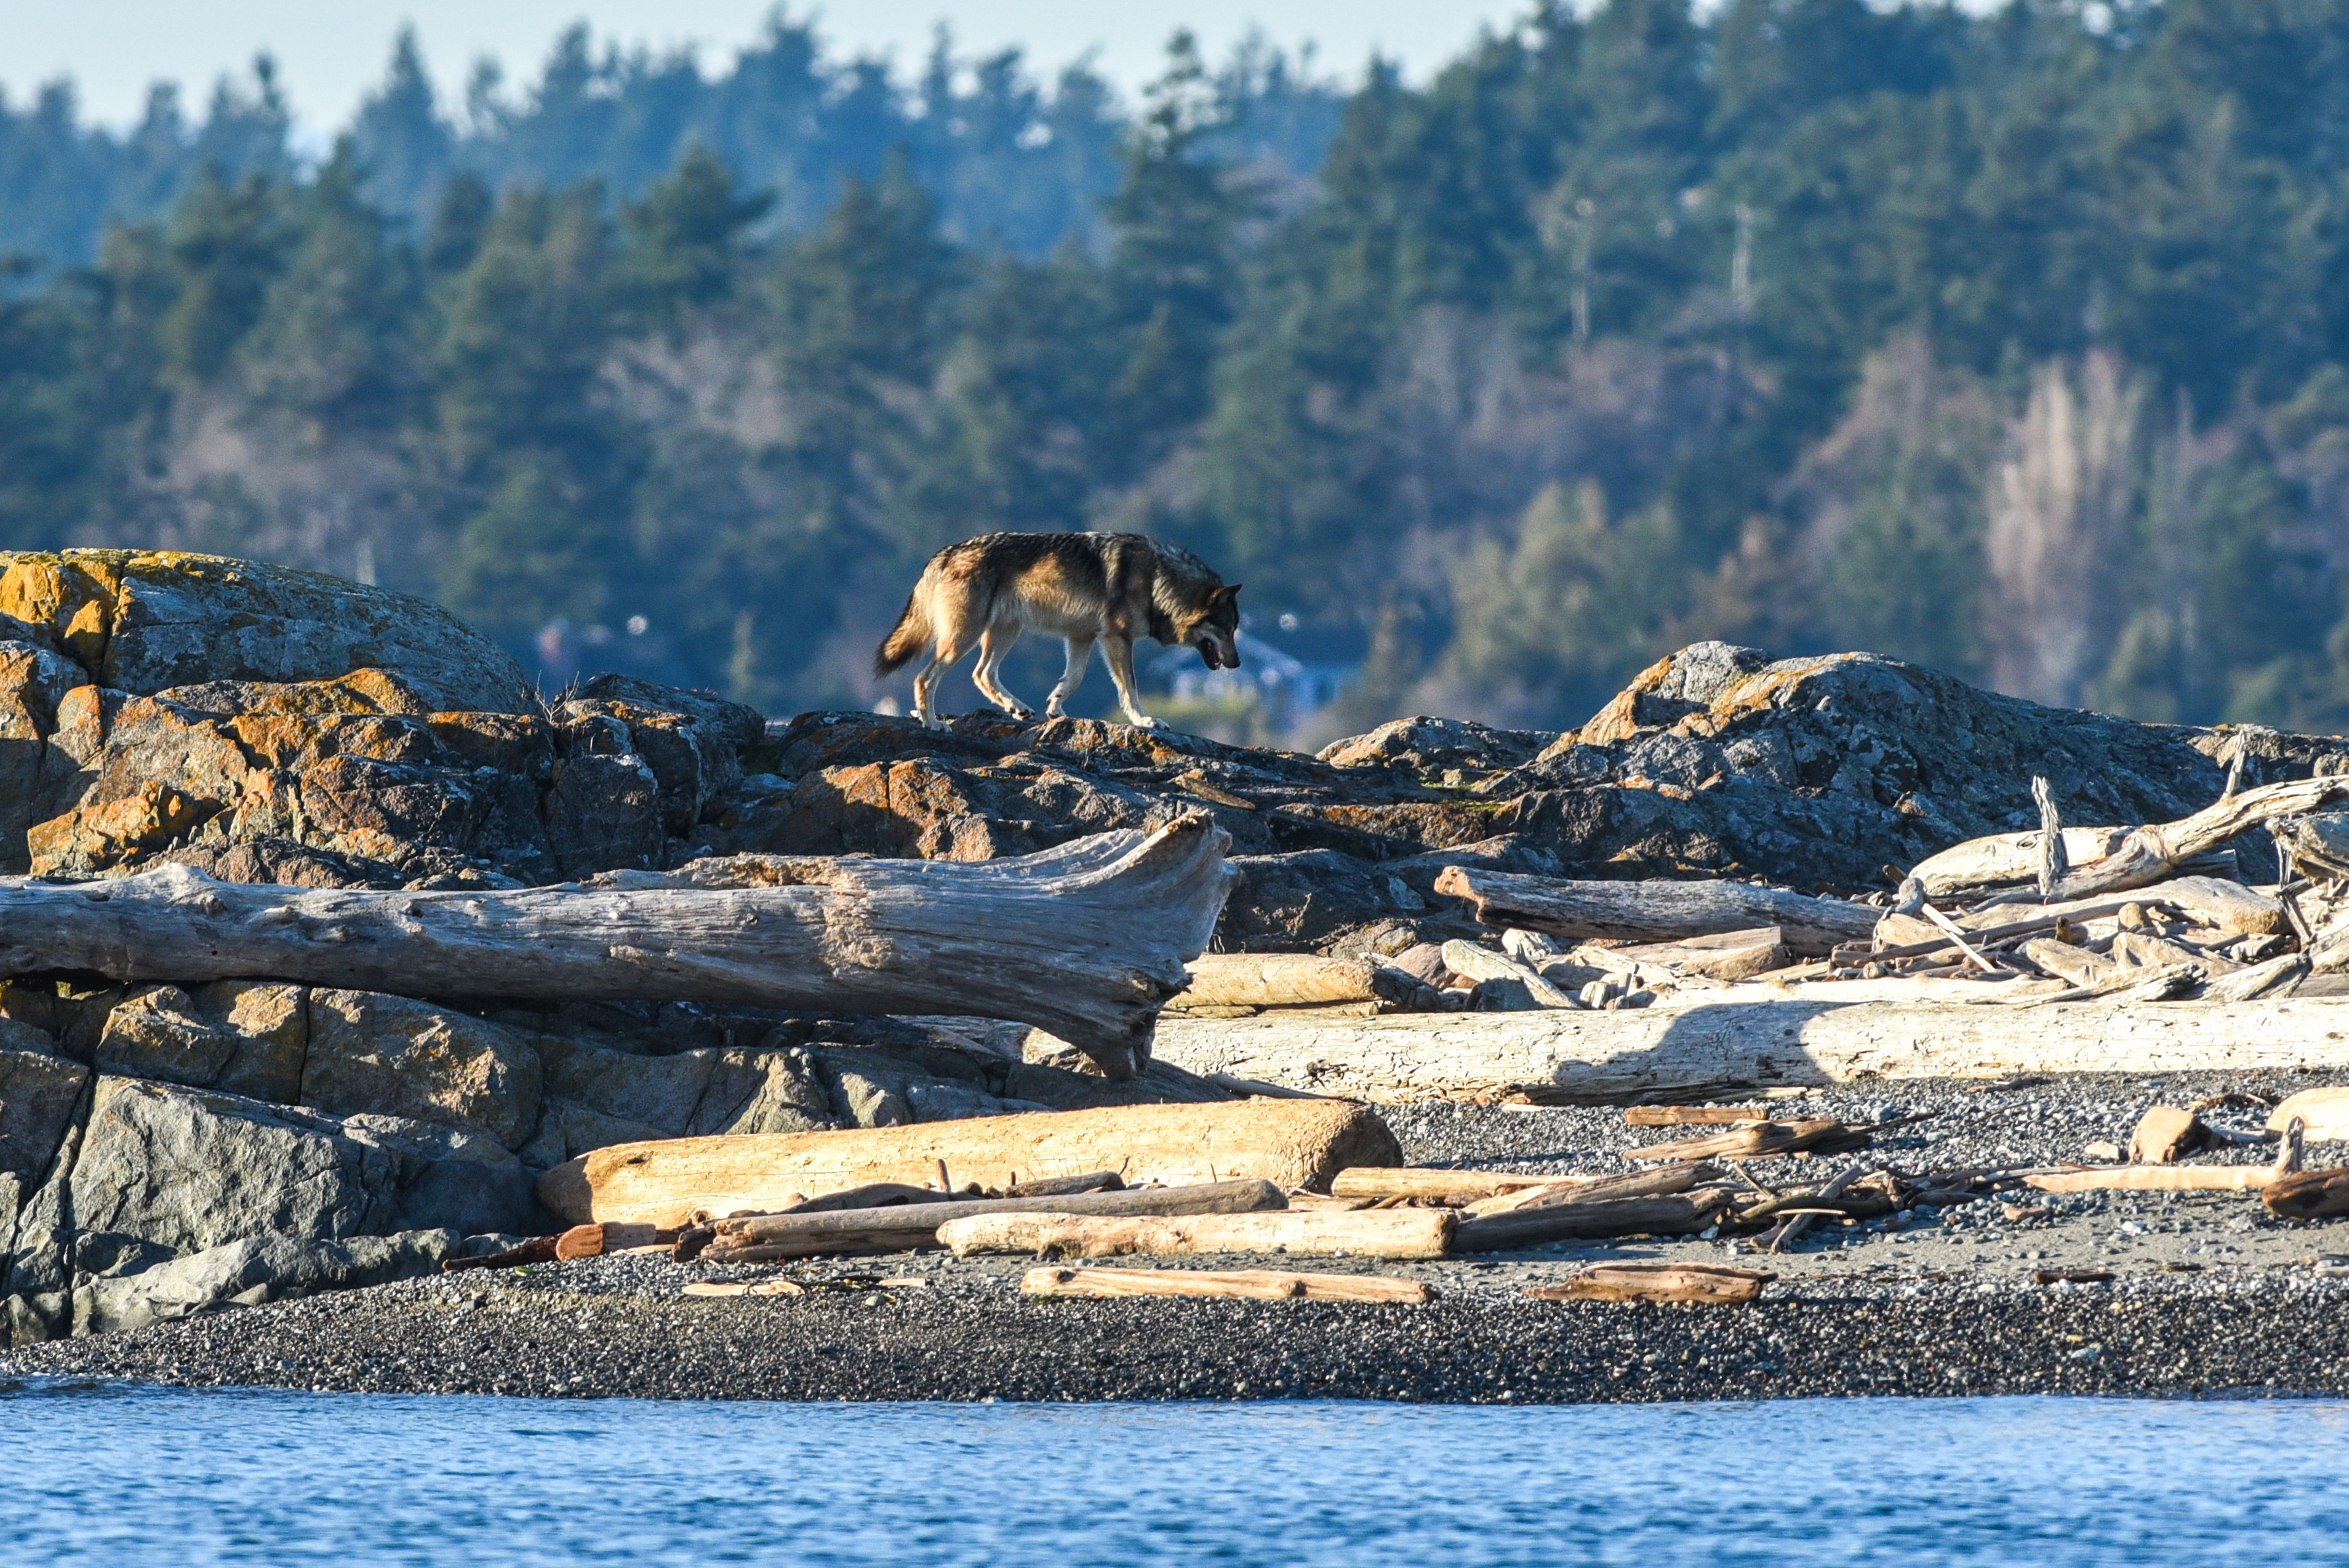 A wolf stands on the rocky shore